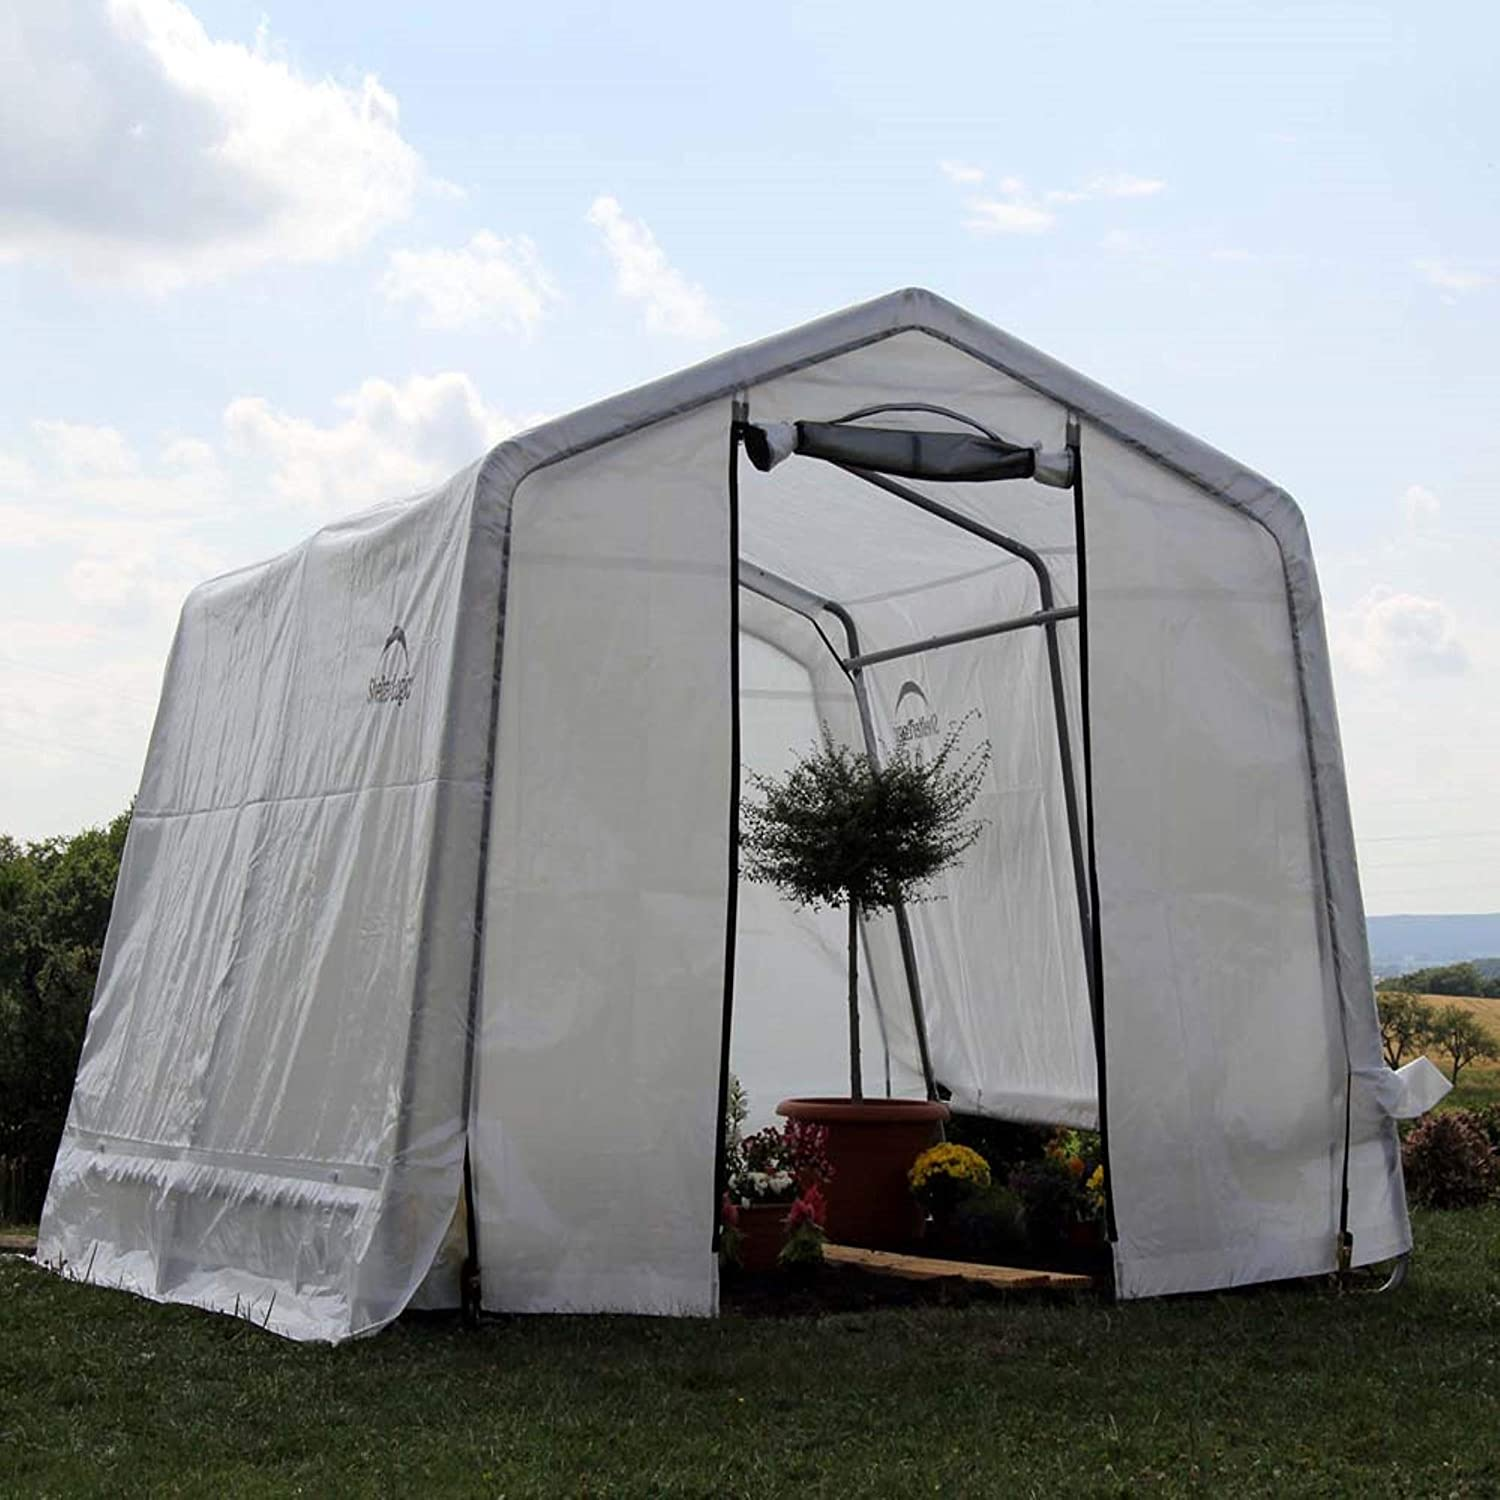 Buy Shelterlogic 10 X 10 Growit Greenhouse In A Box Flow Peak Roof Style Easy Access Outdoor Grow House With Translucent Waterproof Cover White Online In Vietnam B00ak7txni Growit backyard greenhouse reviews